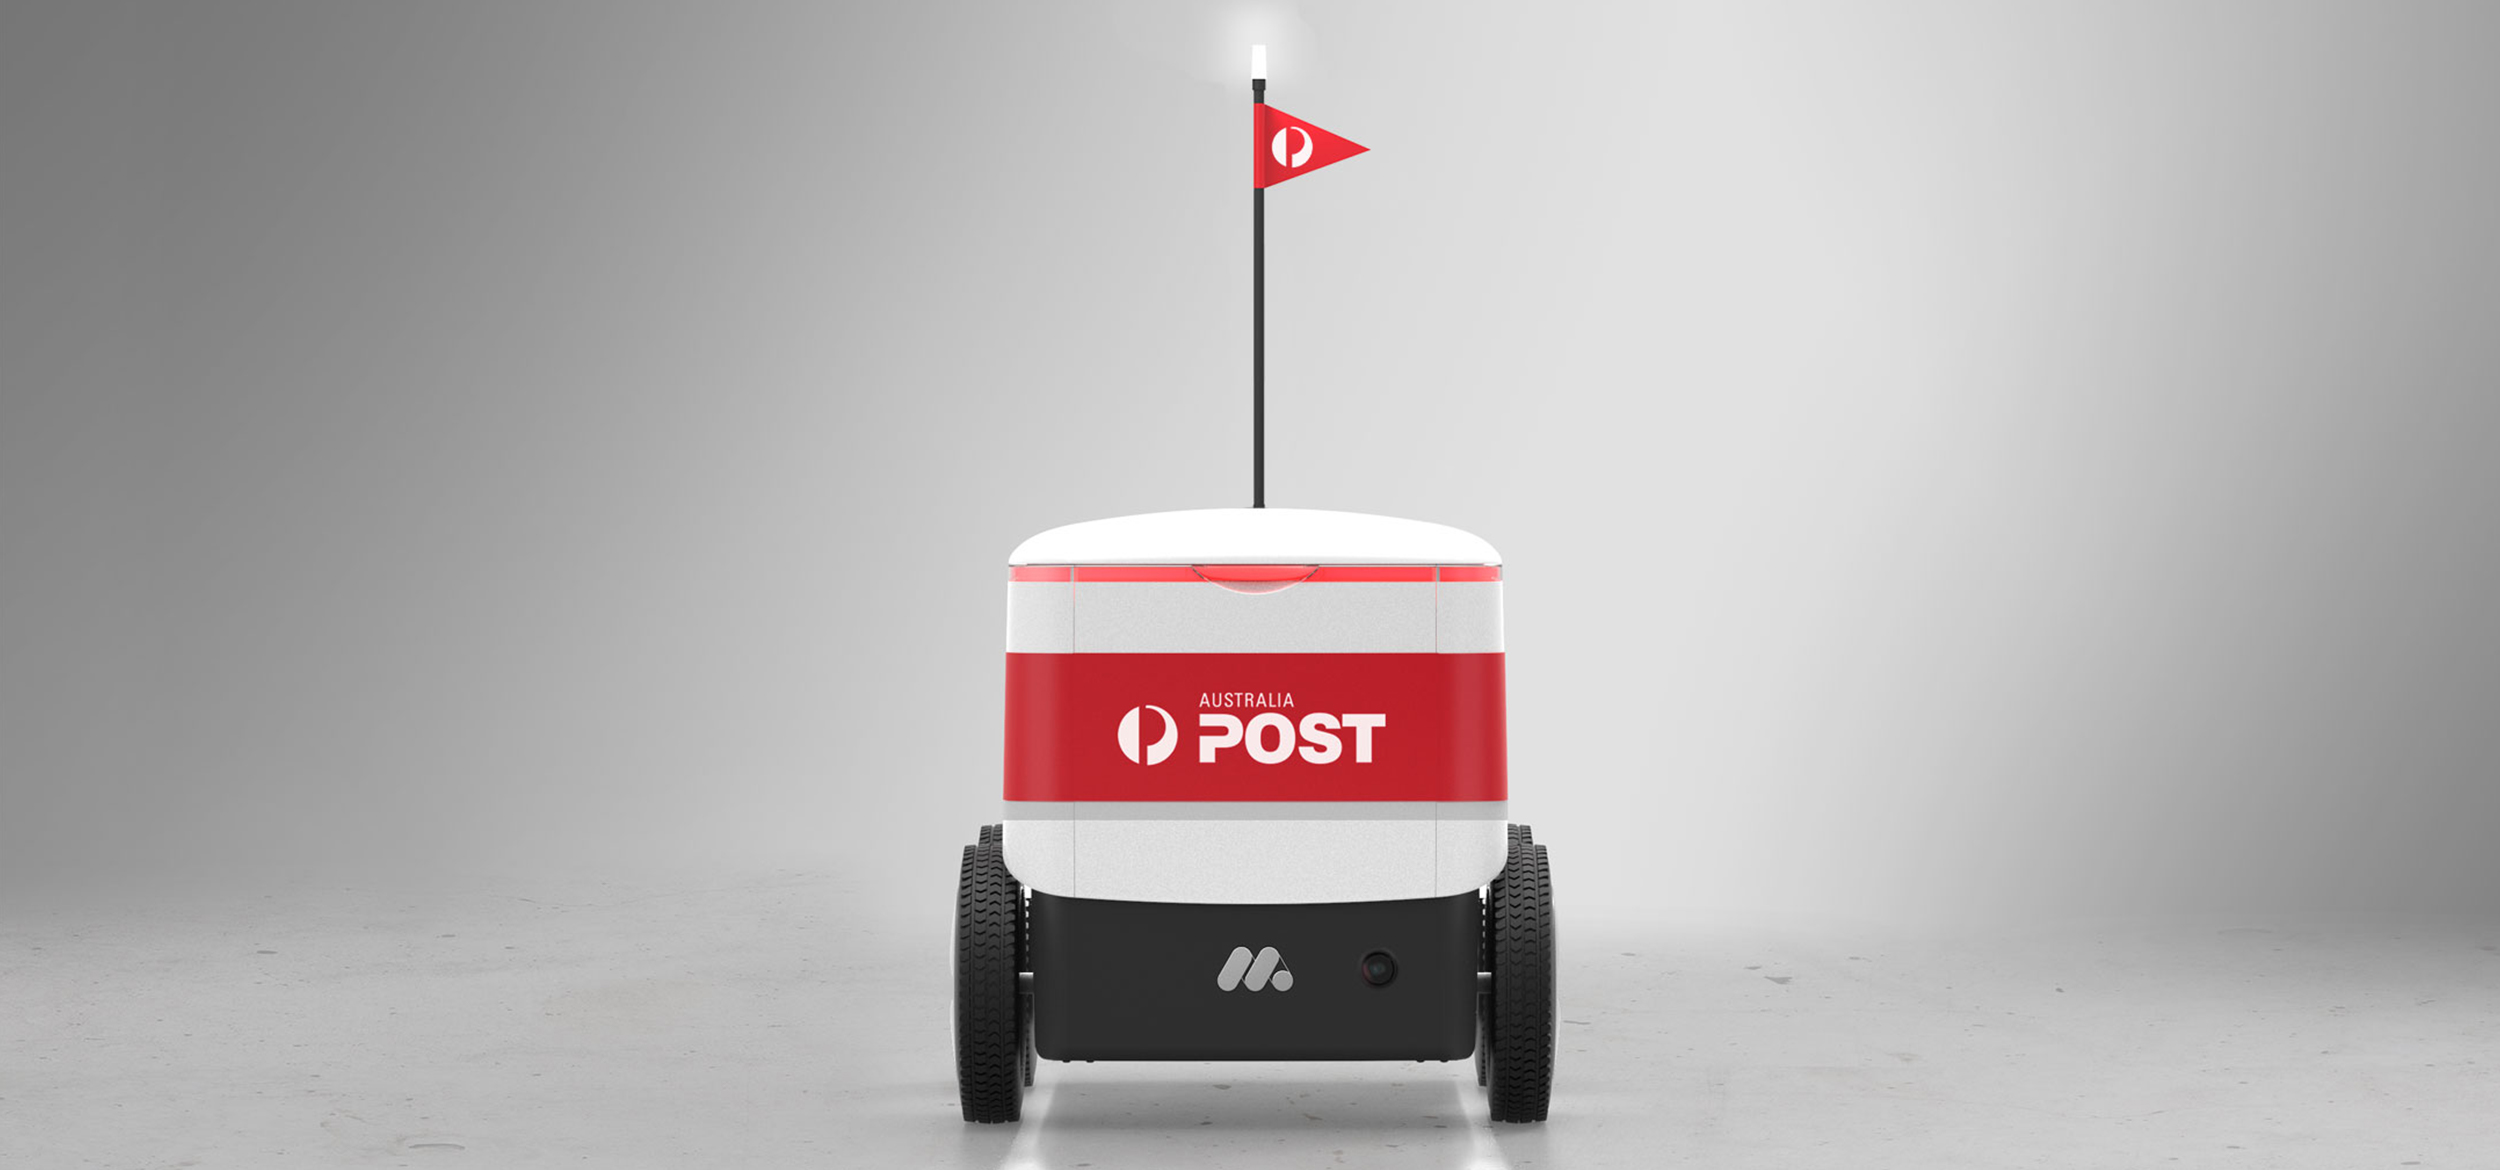 AUST POST ROBOT - Rear - Studio.jpg